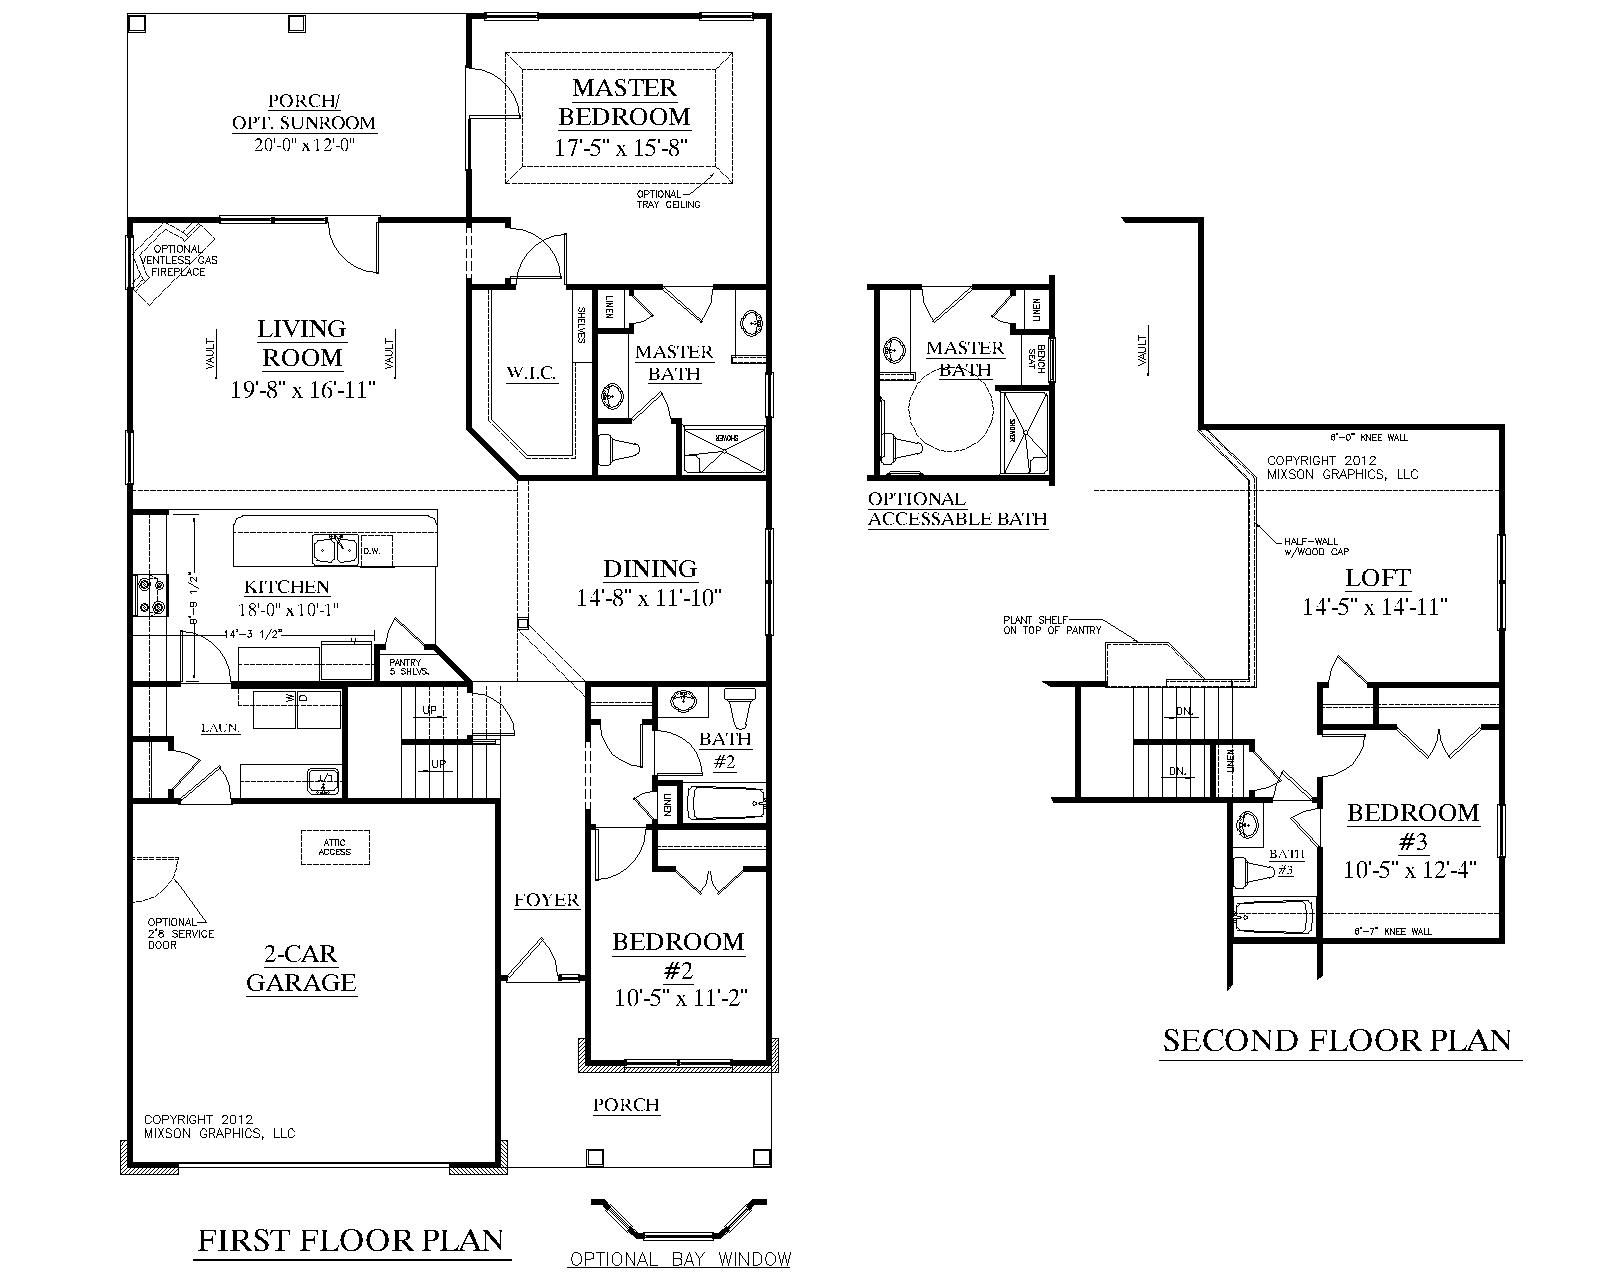 House Plan 2224 Kingstree Floor Plan Traditional 1 1 2 Story House Plan With 3 Bedrooms And 3